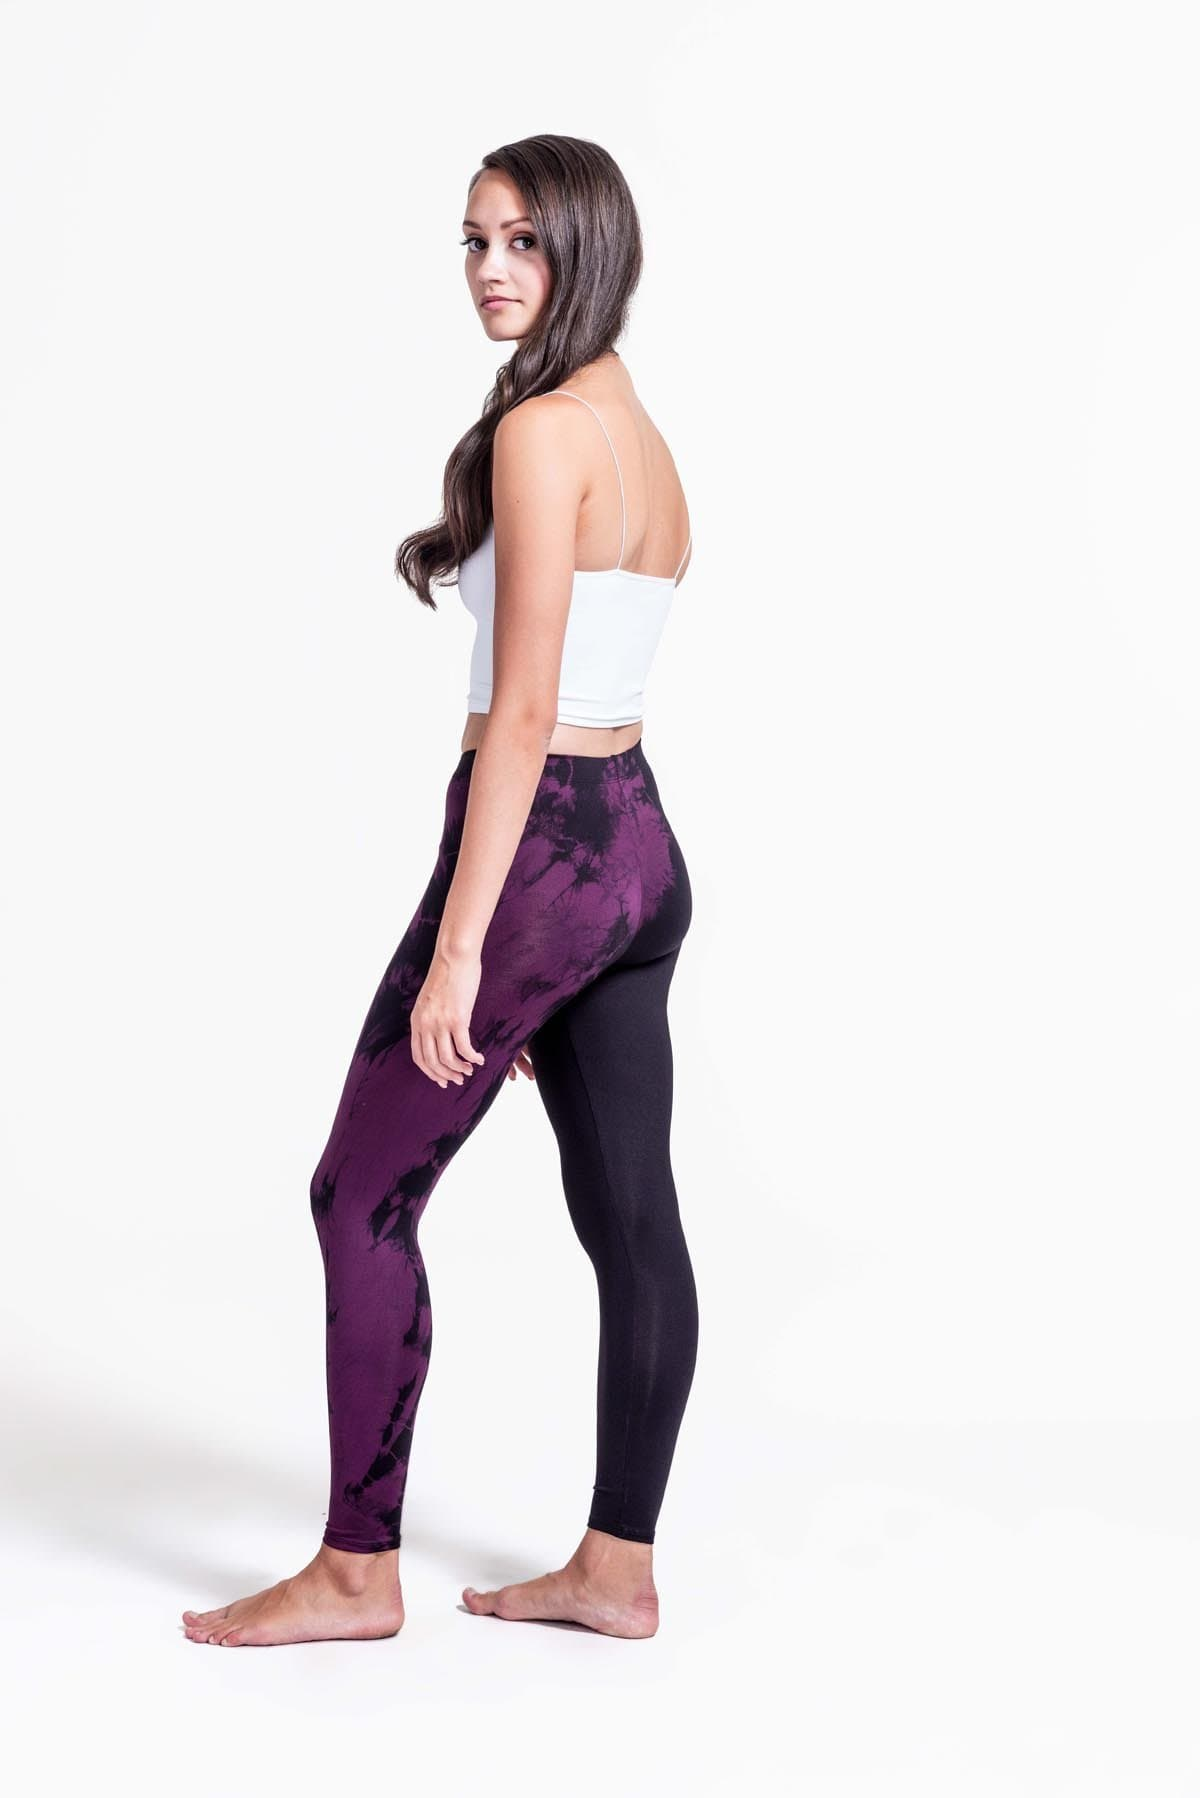 A woman with brown hair models a black sports bra and leggings. The right pant leg of the leggings is black, while the other is tie-dyed in plum and black.